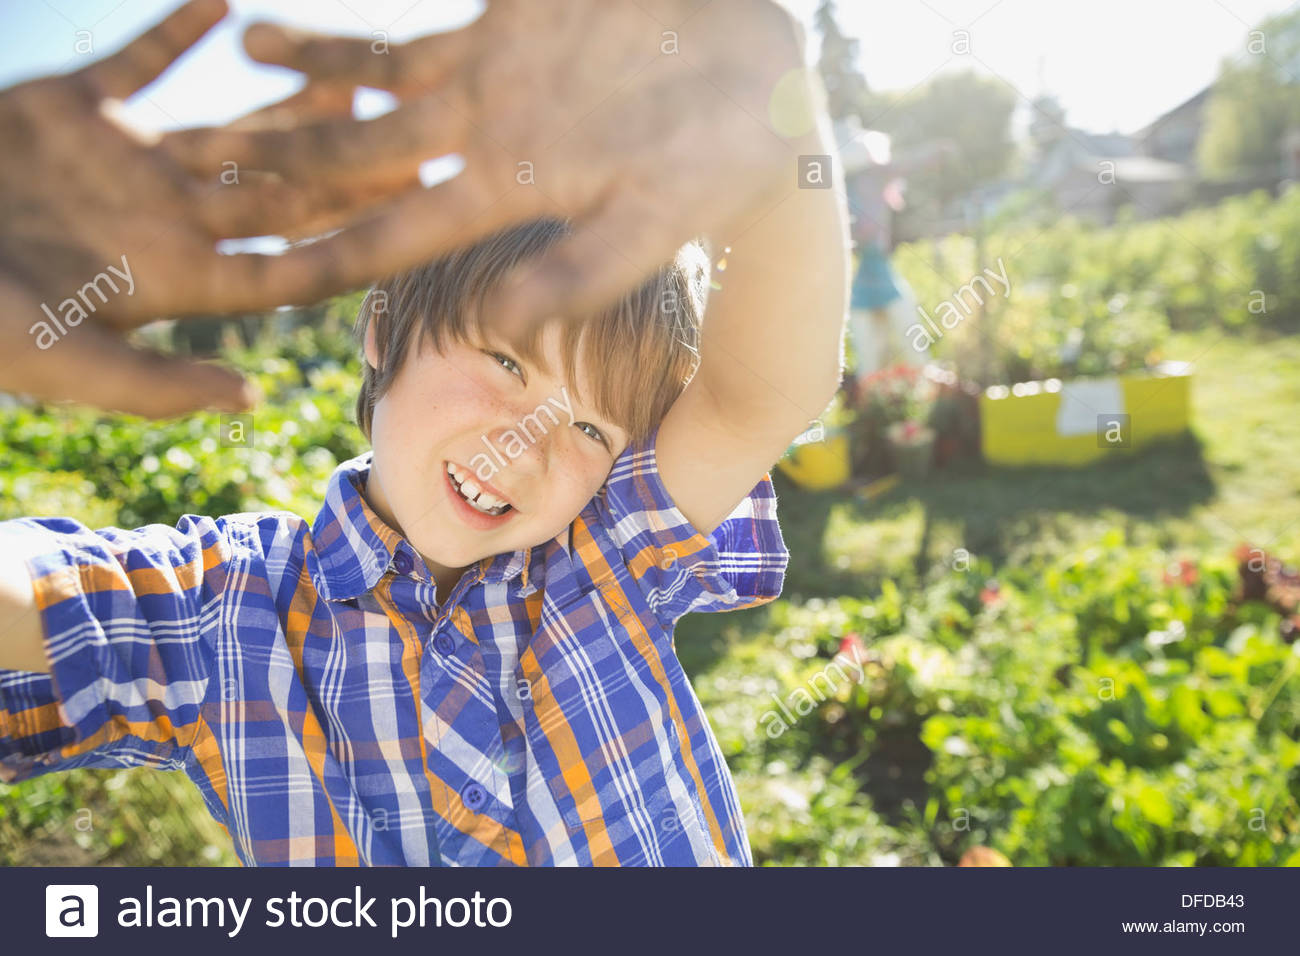 Boy with arms raised standing in community garden - Stock Image